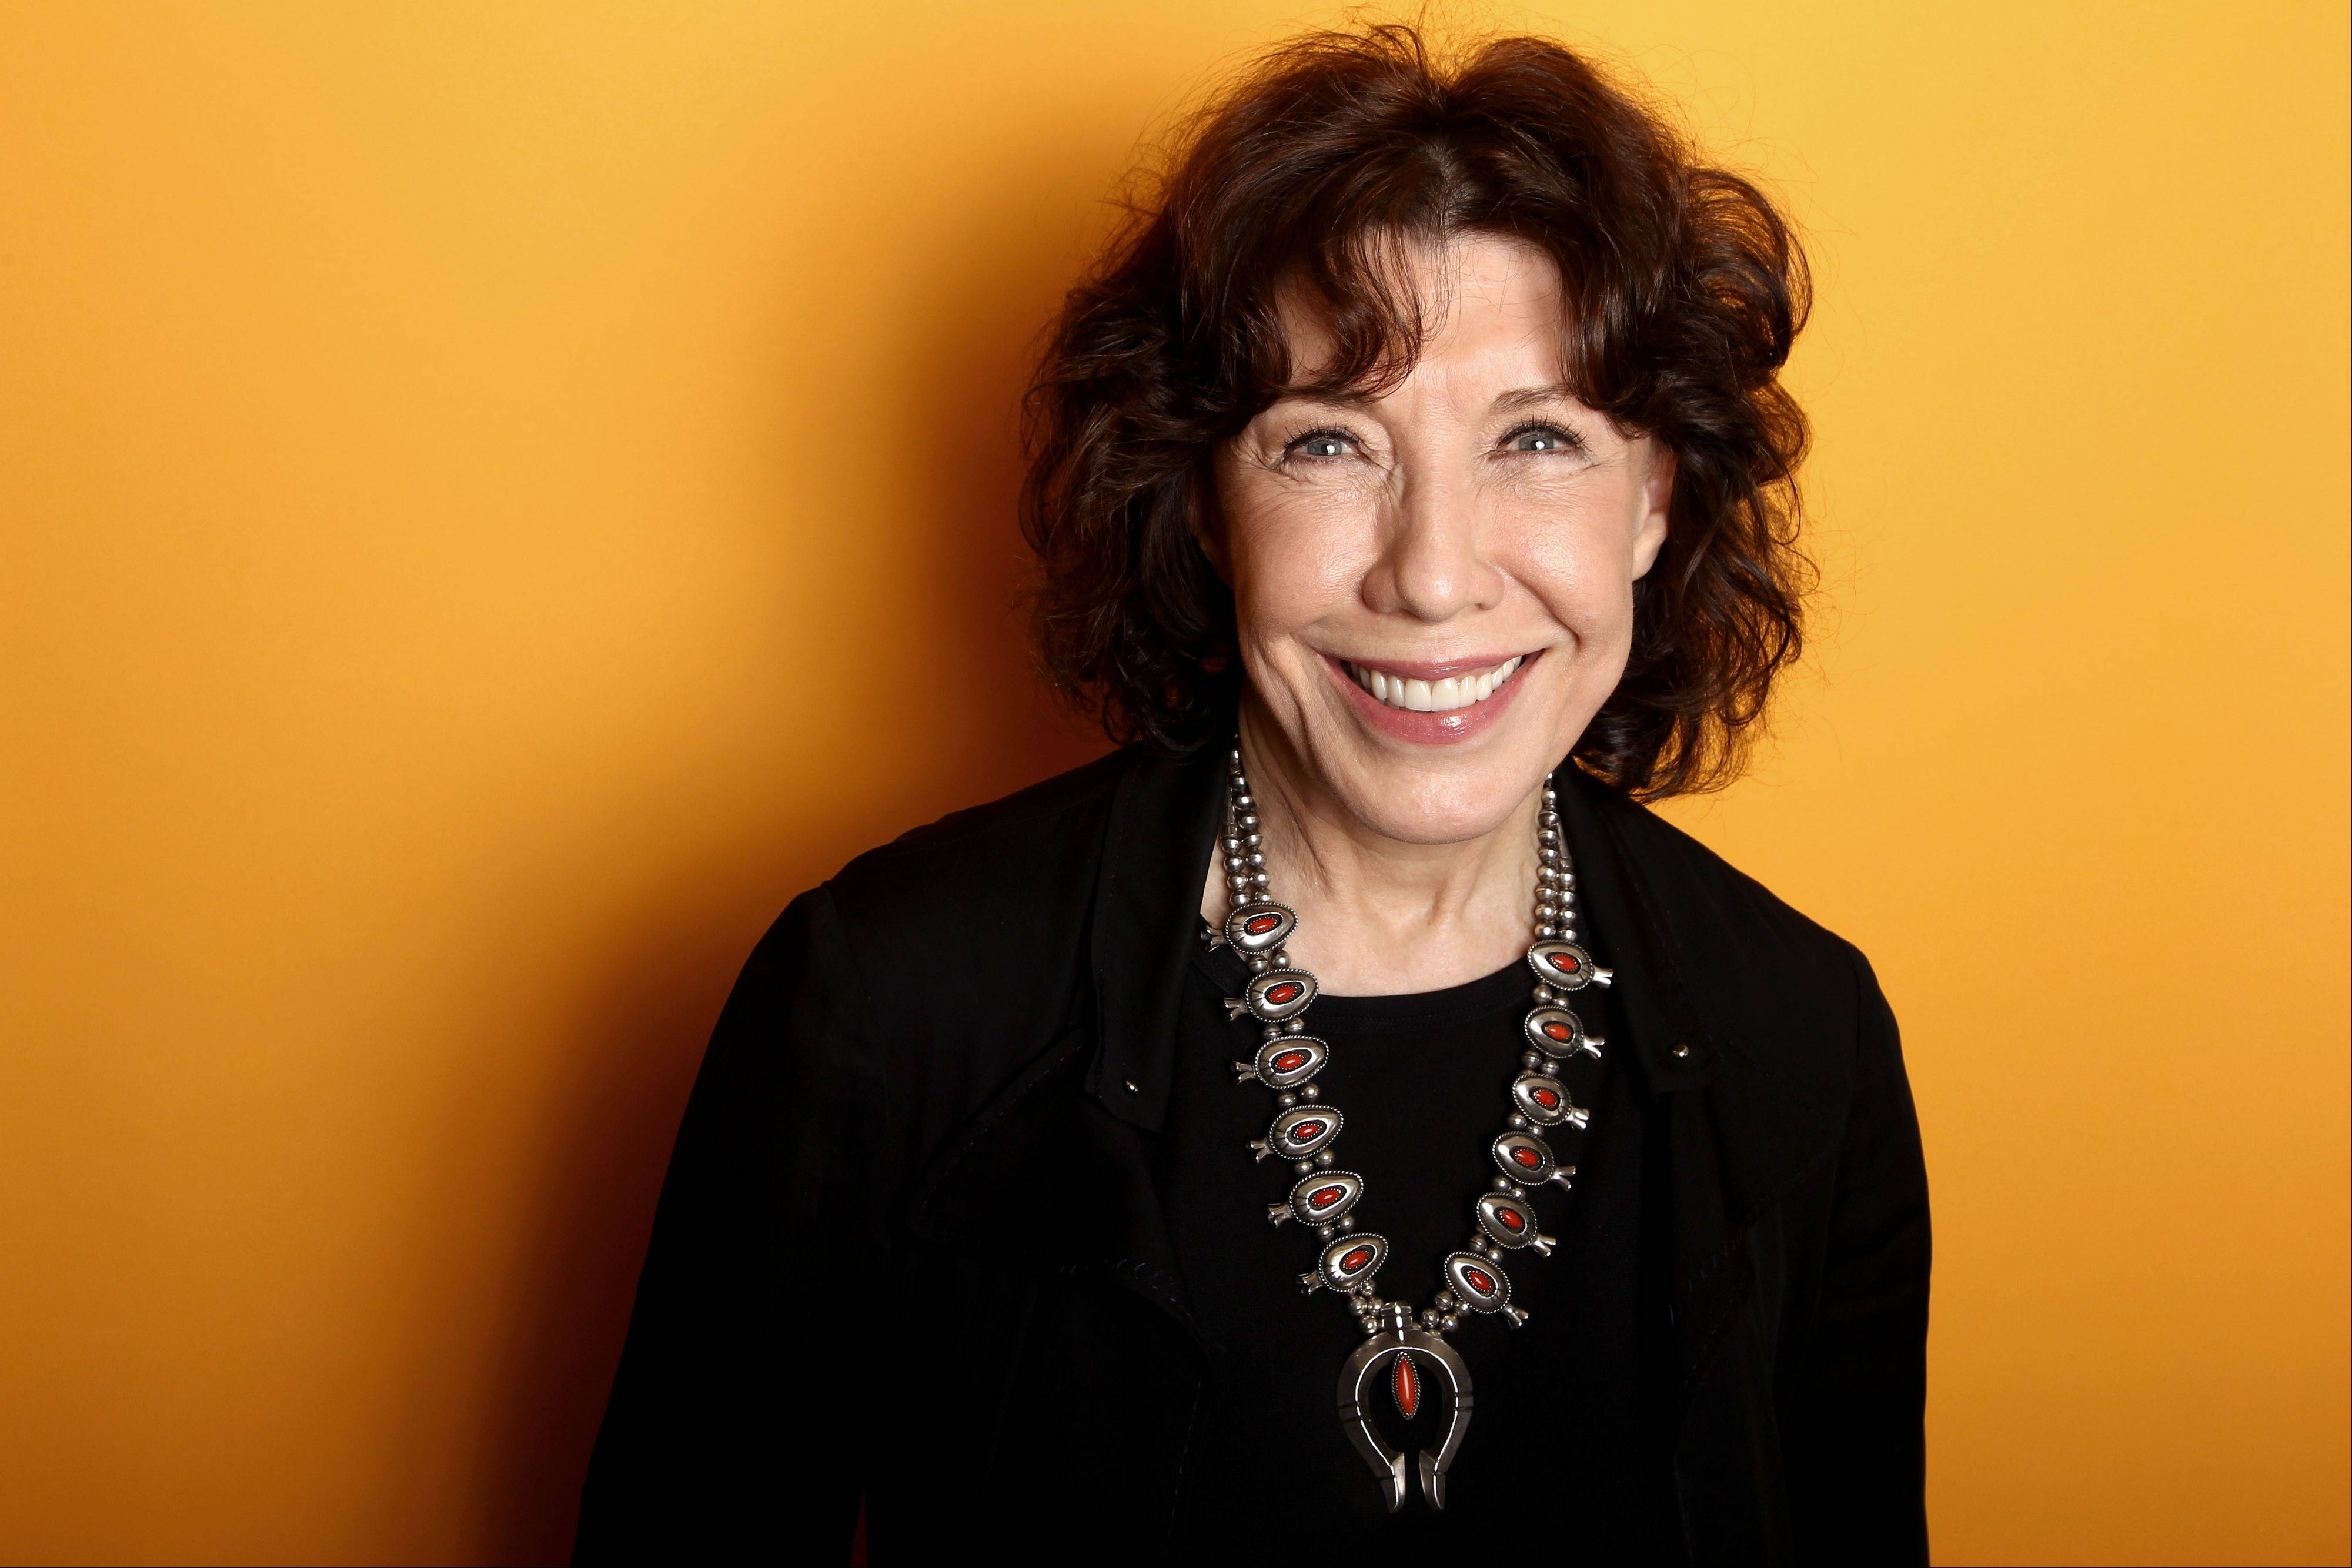 Actress Lily Tomlin poses for a portrait at the Four Seasons Hotel, in Los Angeles. Tomlin's publicist Jennifer Allen told People Magazine and other media outlets Tuesday that the 74-year-old actress and comedian married 78-year-old Jane Wagner in a private New Year's Eve ceremony in Los Angeles.